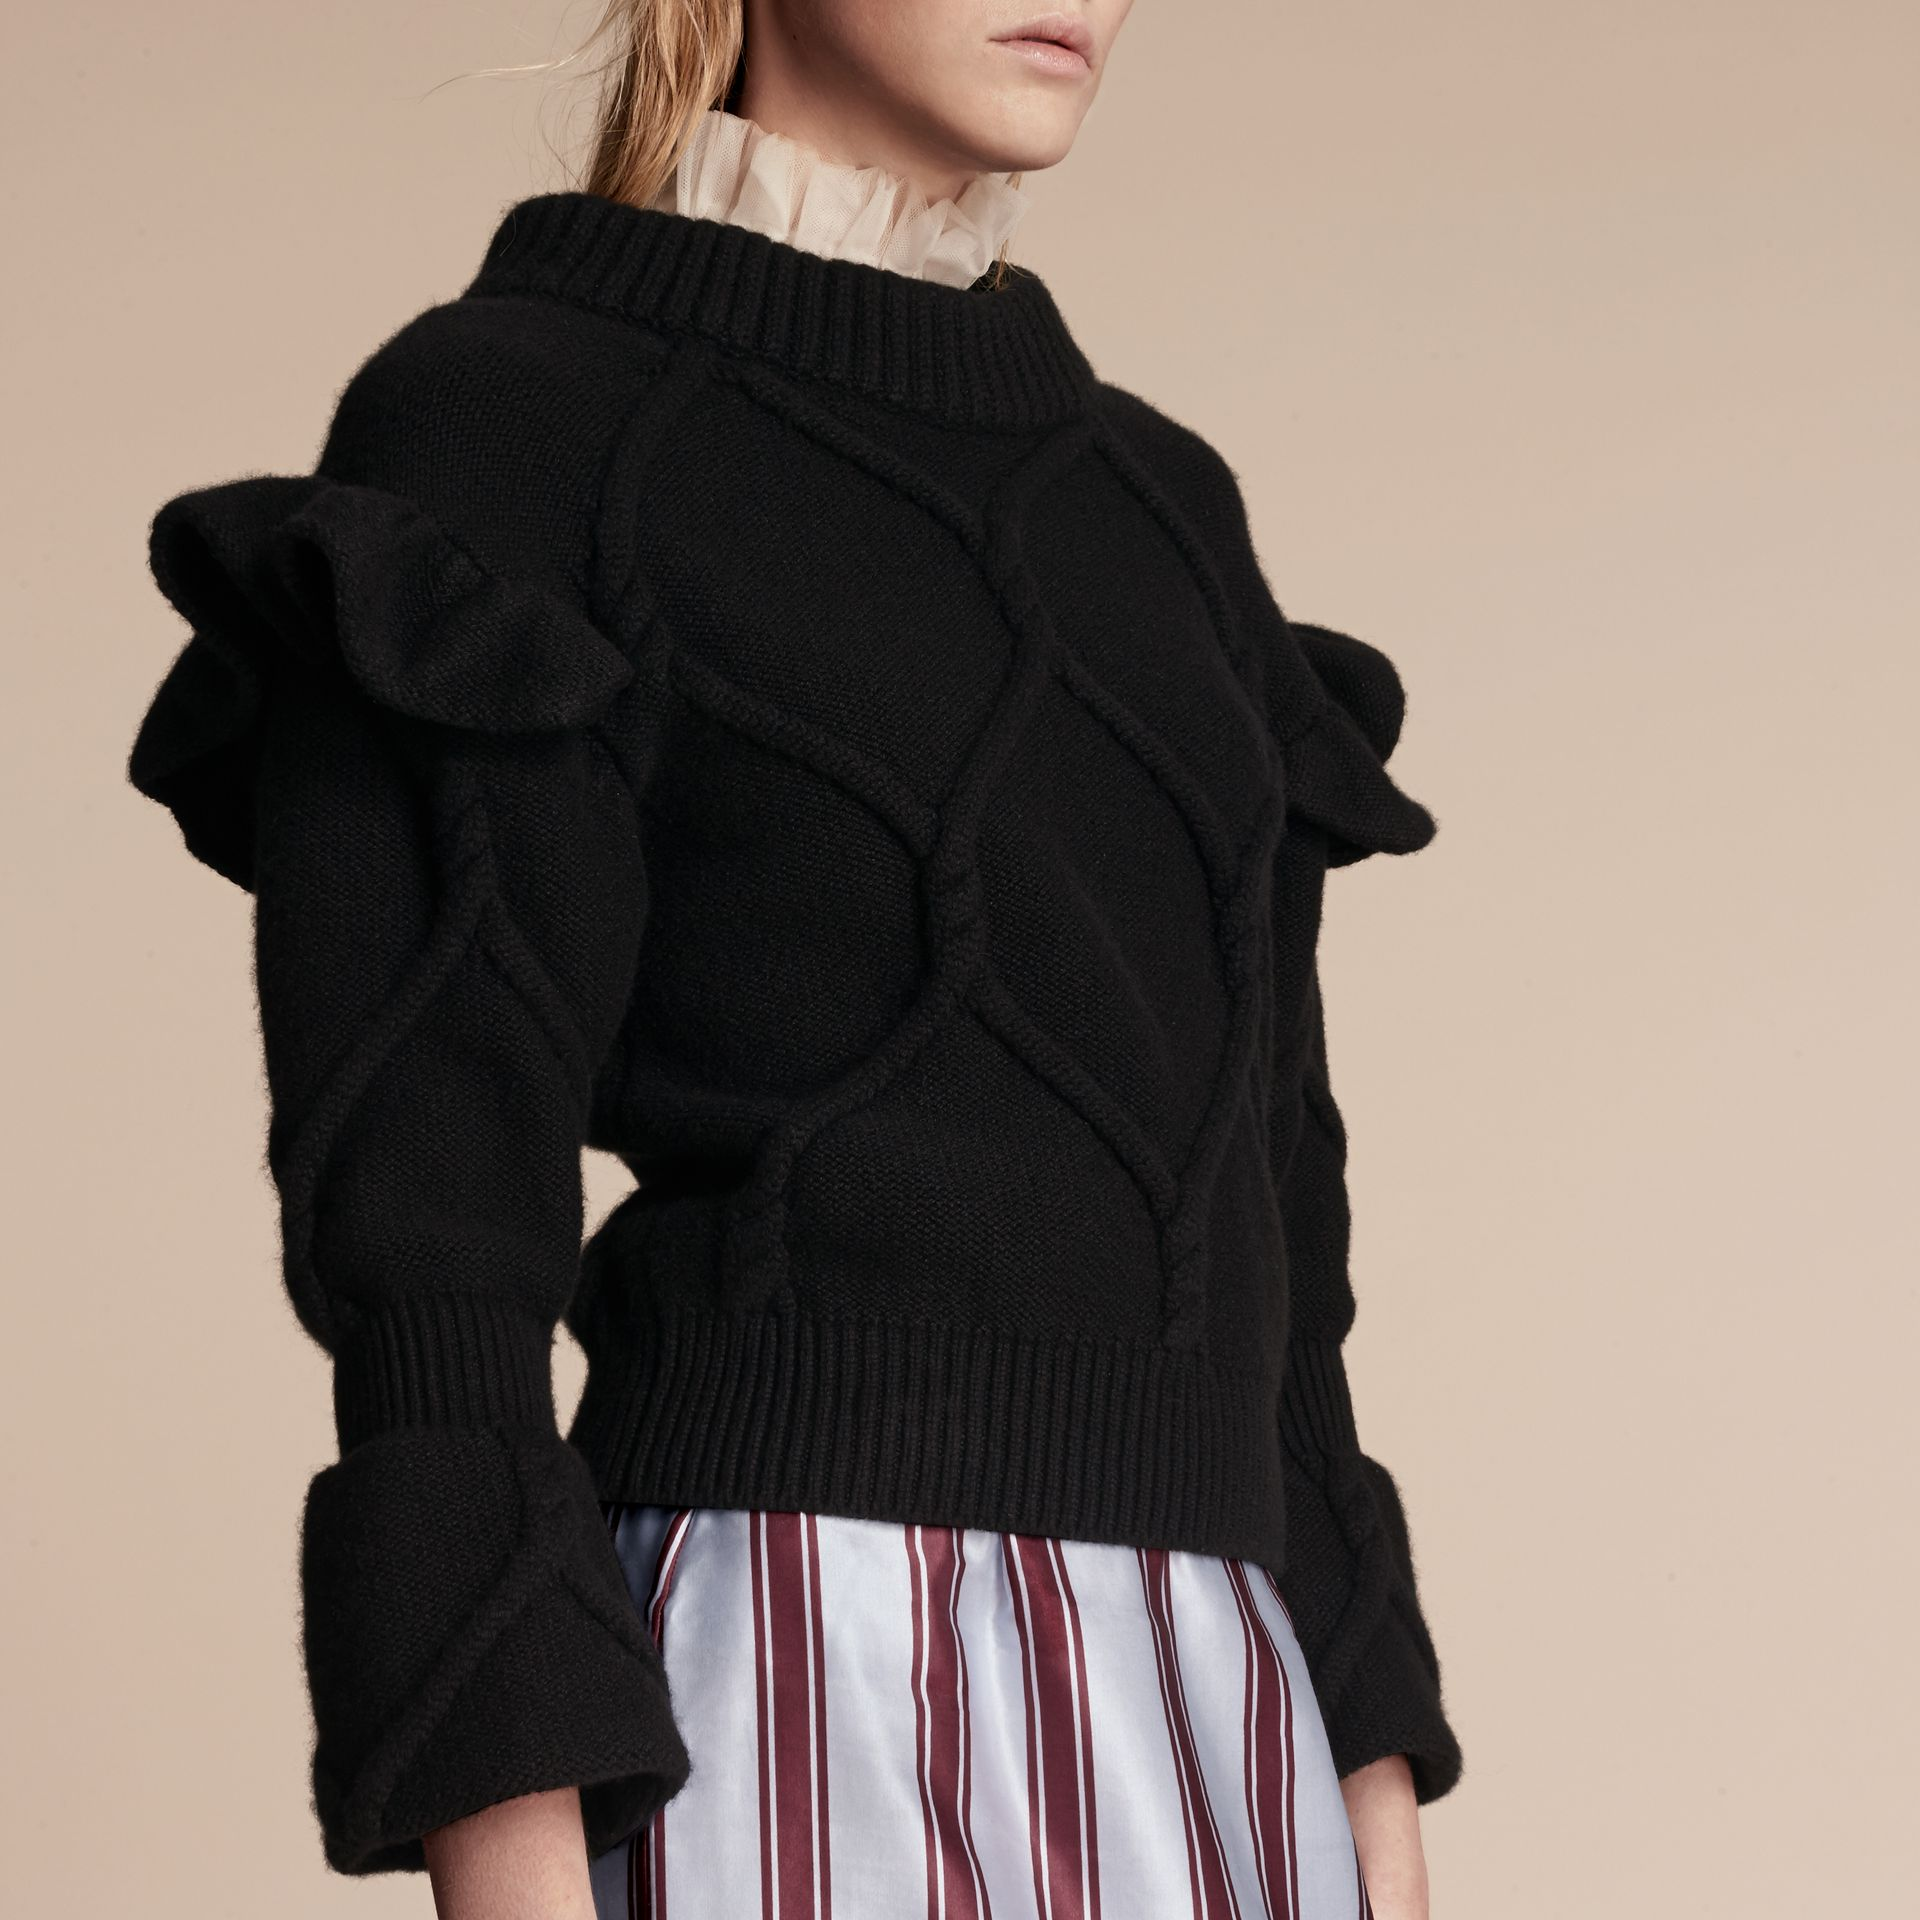 Black Cable Knit Wool Cashmere Sweater with Ruffle Bell Sleeves Black - gallery image 5